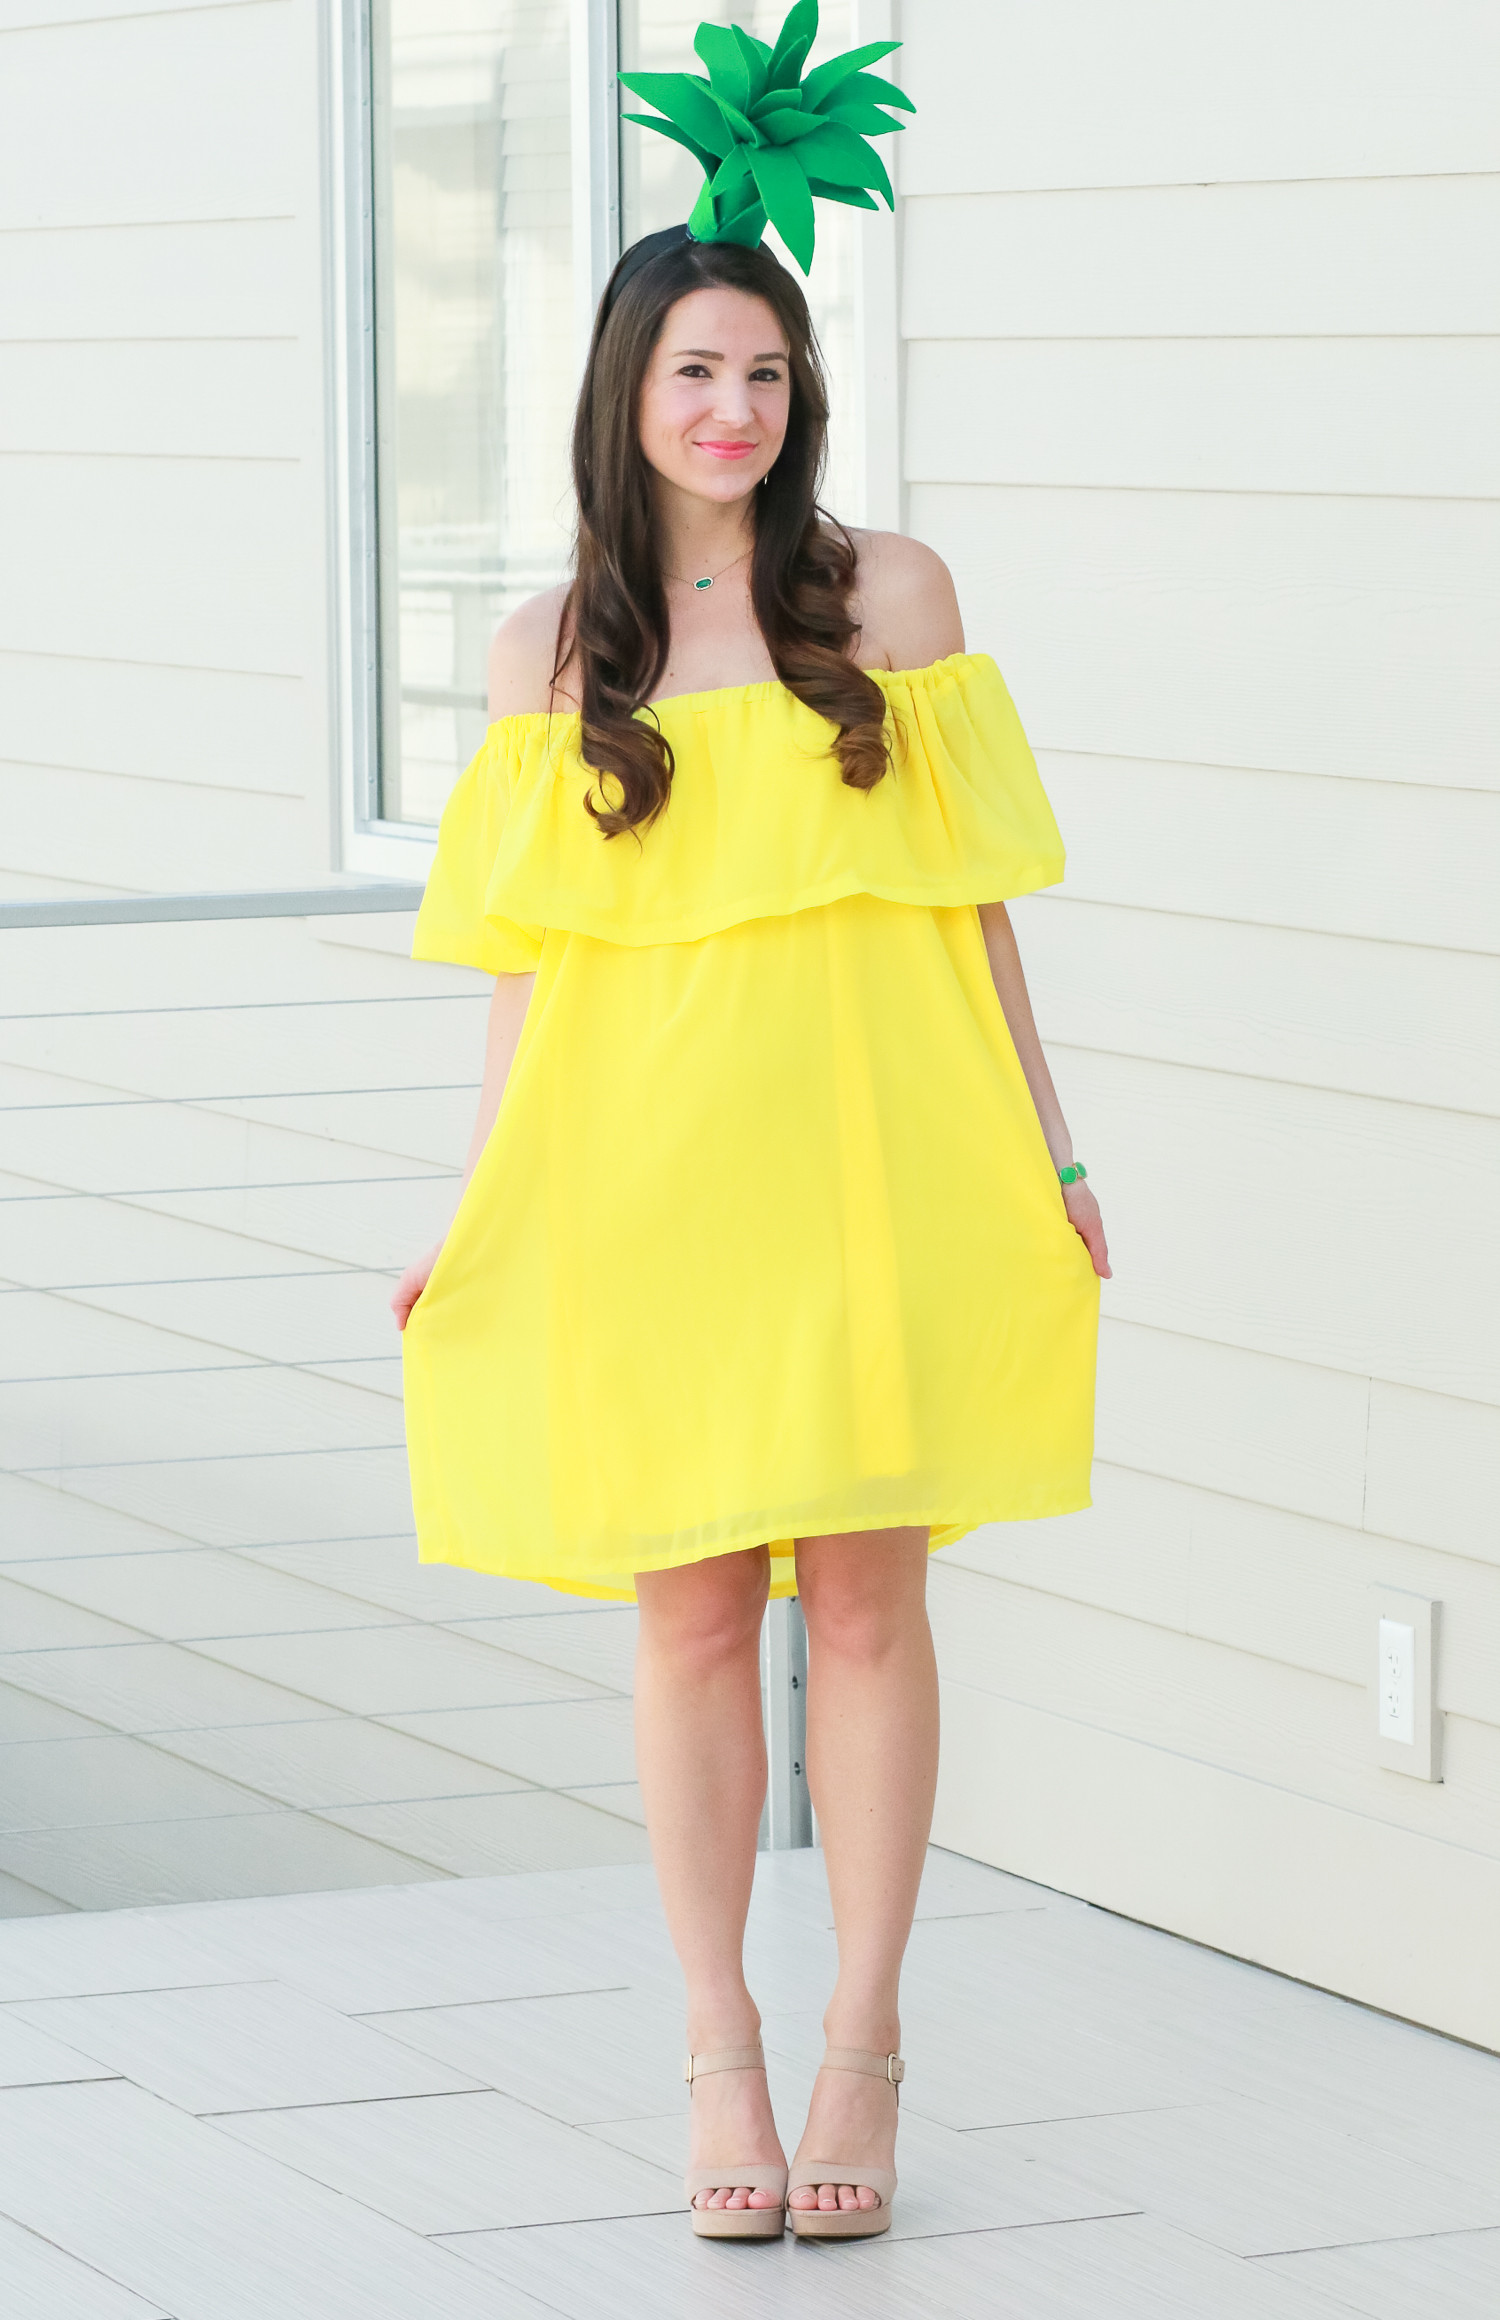 Simple DIY Halloween Costumes For Adults  DIY Pineapple Costume That Costs Less Than $3 to Make